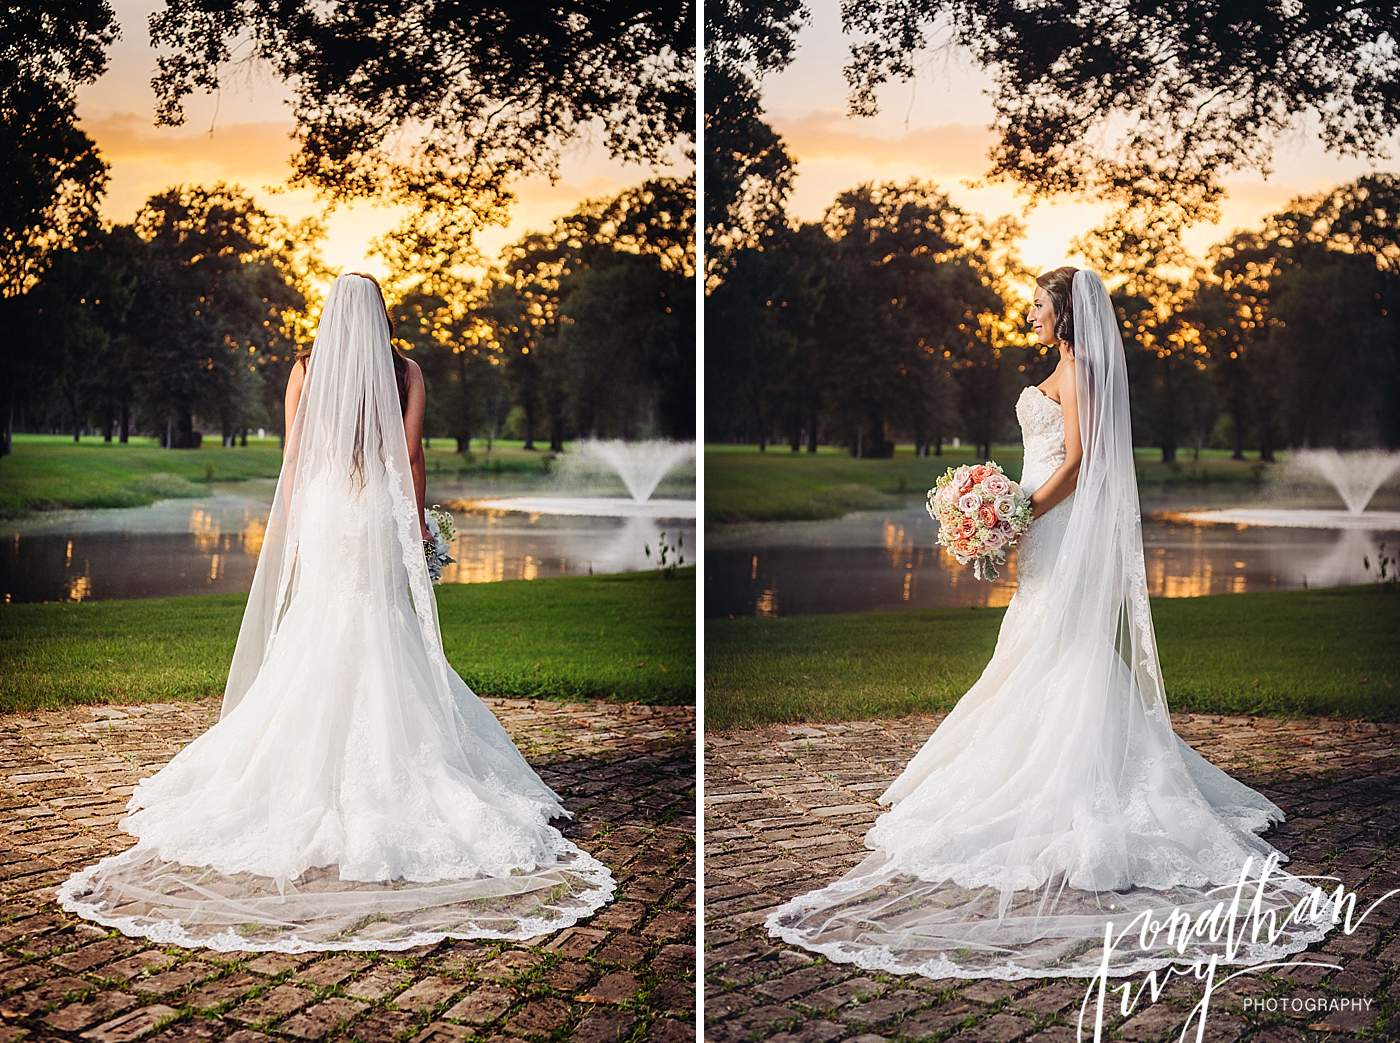 Balmorhea Bridal,Balmorhea Events,Balmorhea Events Bridal,Bridal at Balmorhea,Houston Wedding Photographer,The Woodlands Wedding Photographer,